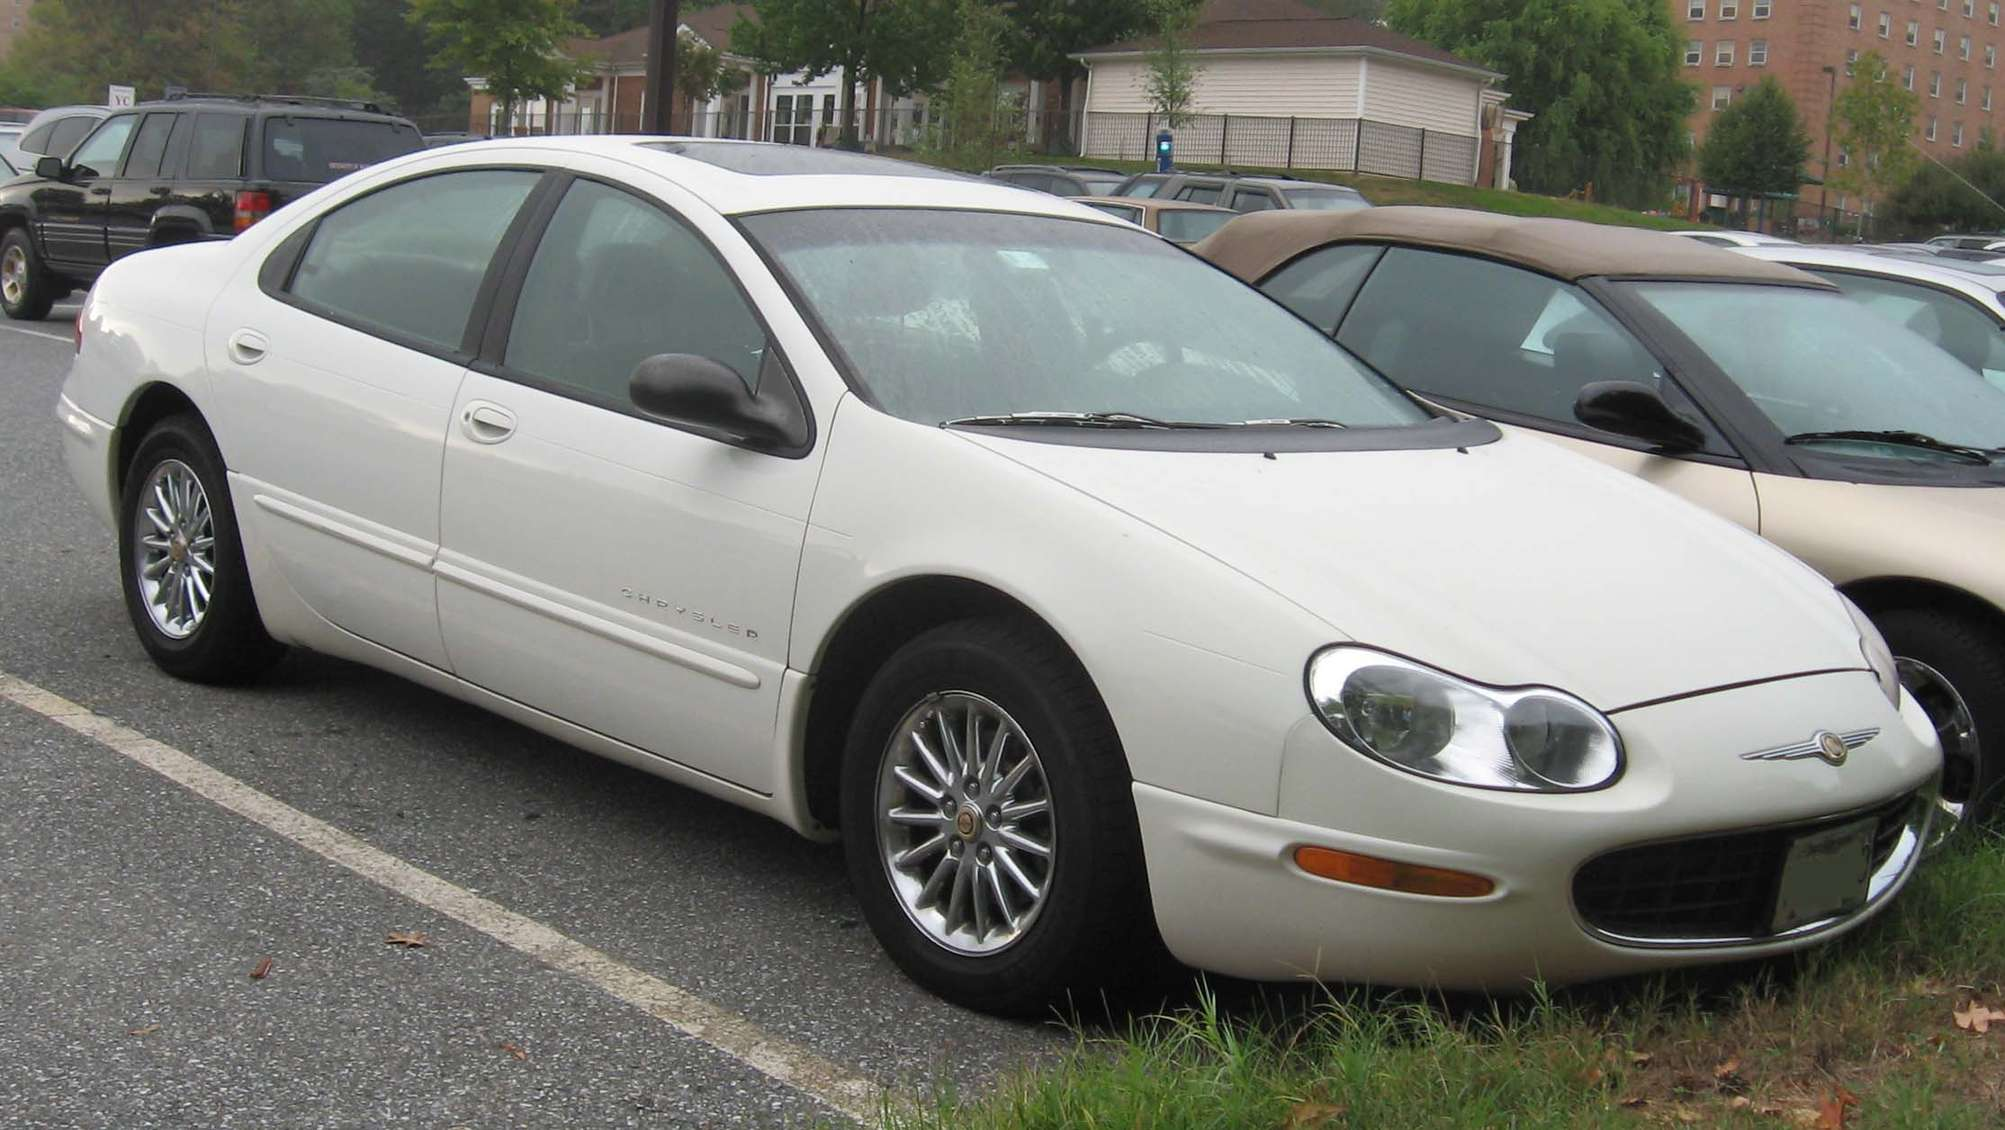 Chrysler Concorde #9509173